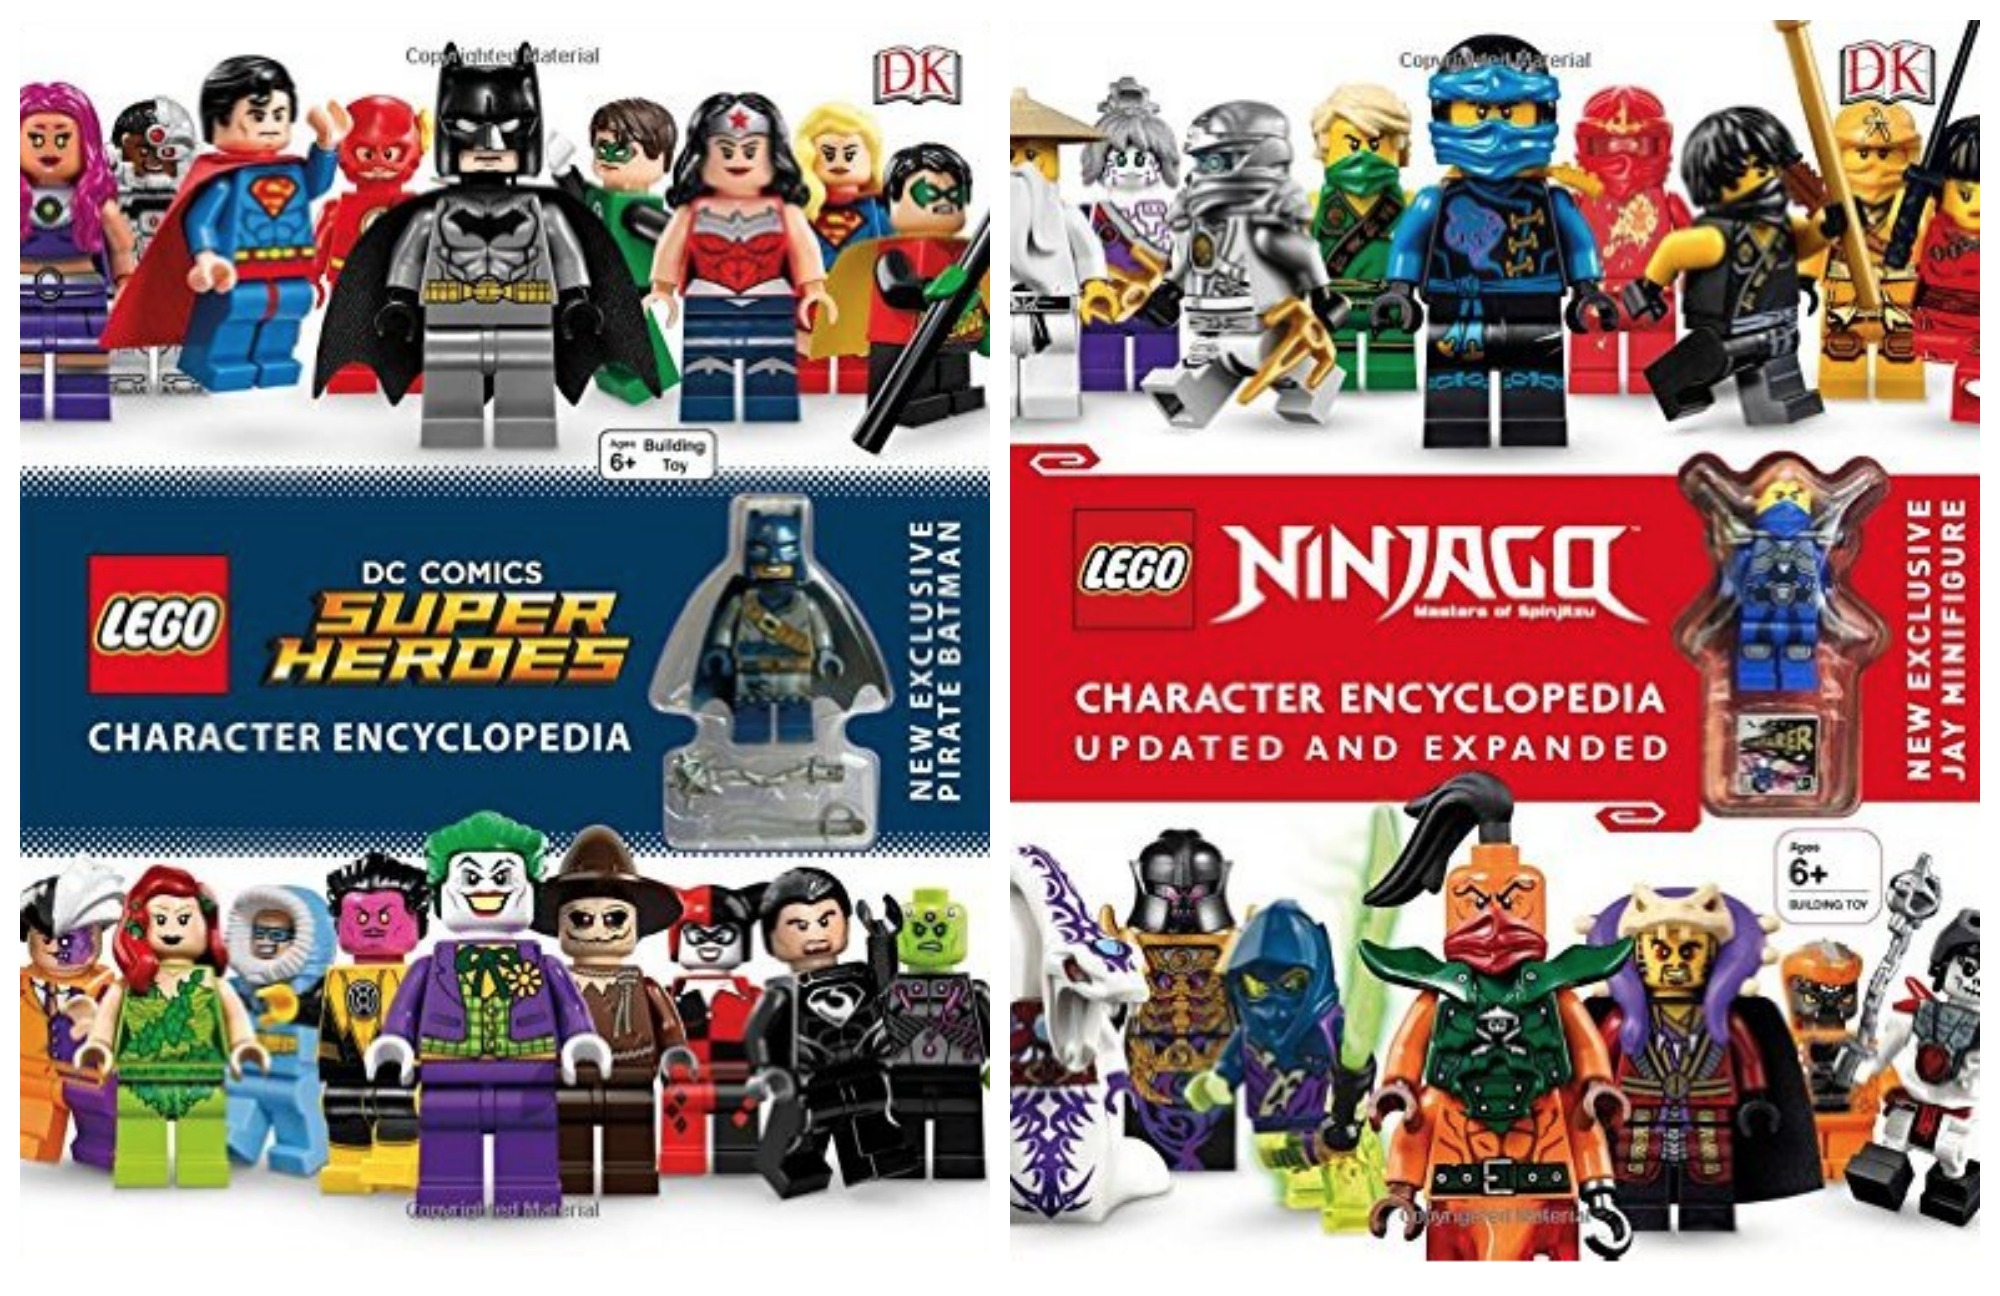 Get the LEGO DC Comics Super Heroes Character Encyclopedia or LEGO Ninjago Character Encyclopedia for$8.25!